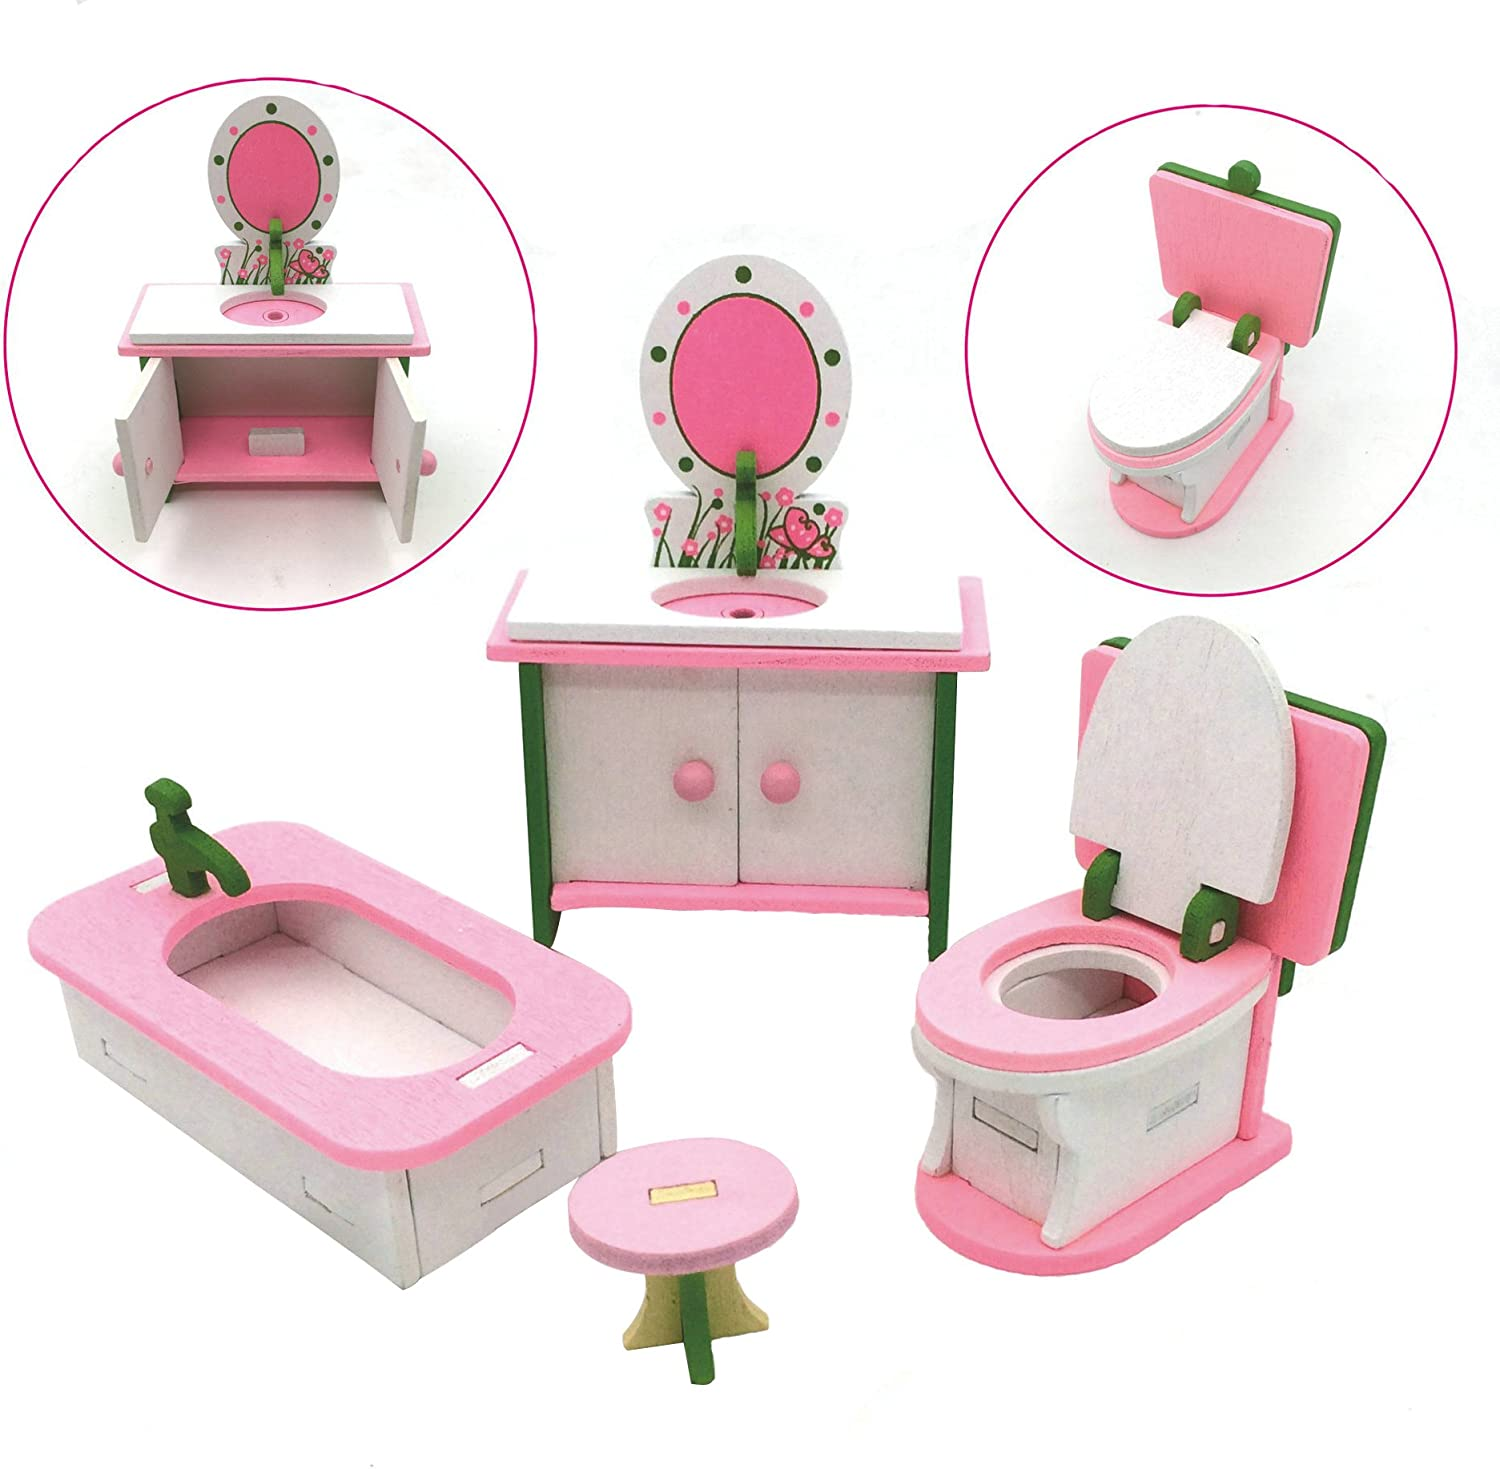 X Hot Popcorn Wooden Colorful Dolls House Furniture Toys Set Miniature Models DIY Assembled Toys (Bathroom Room)